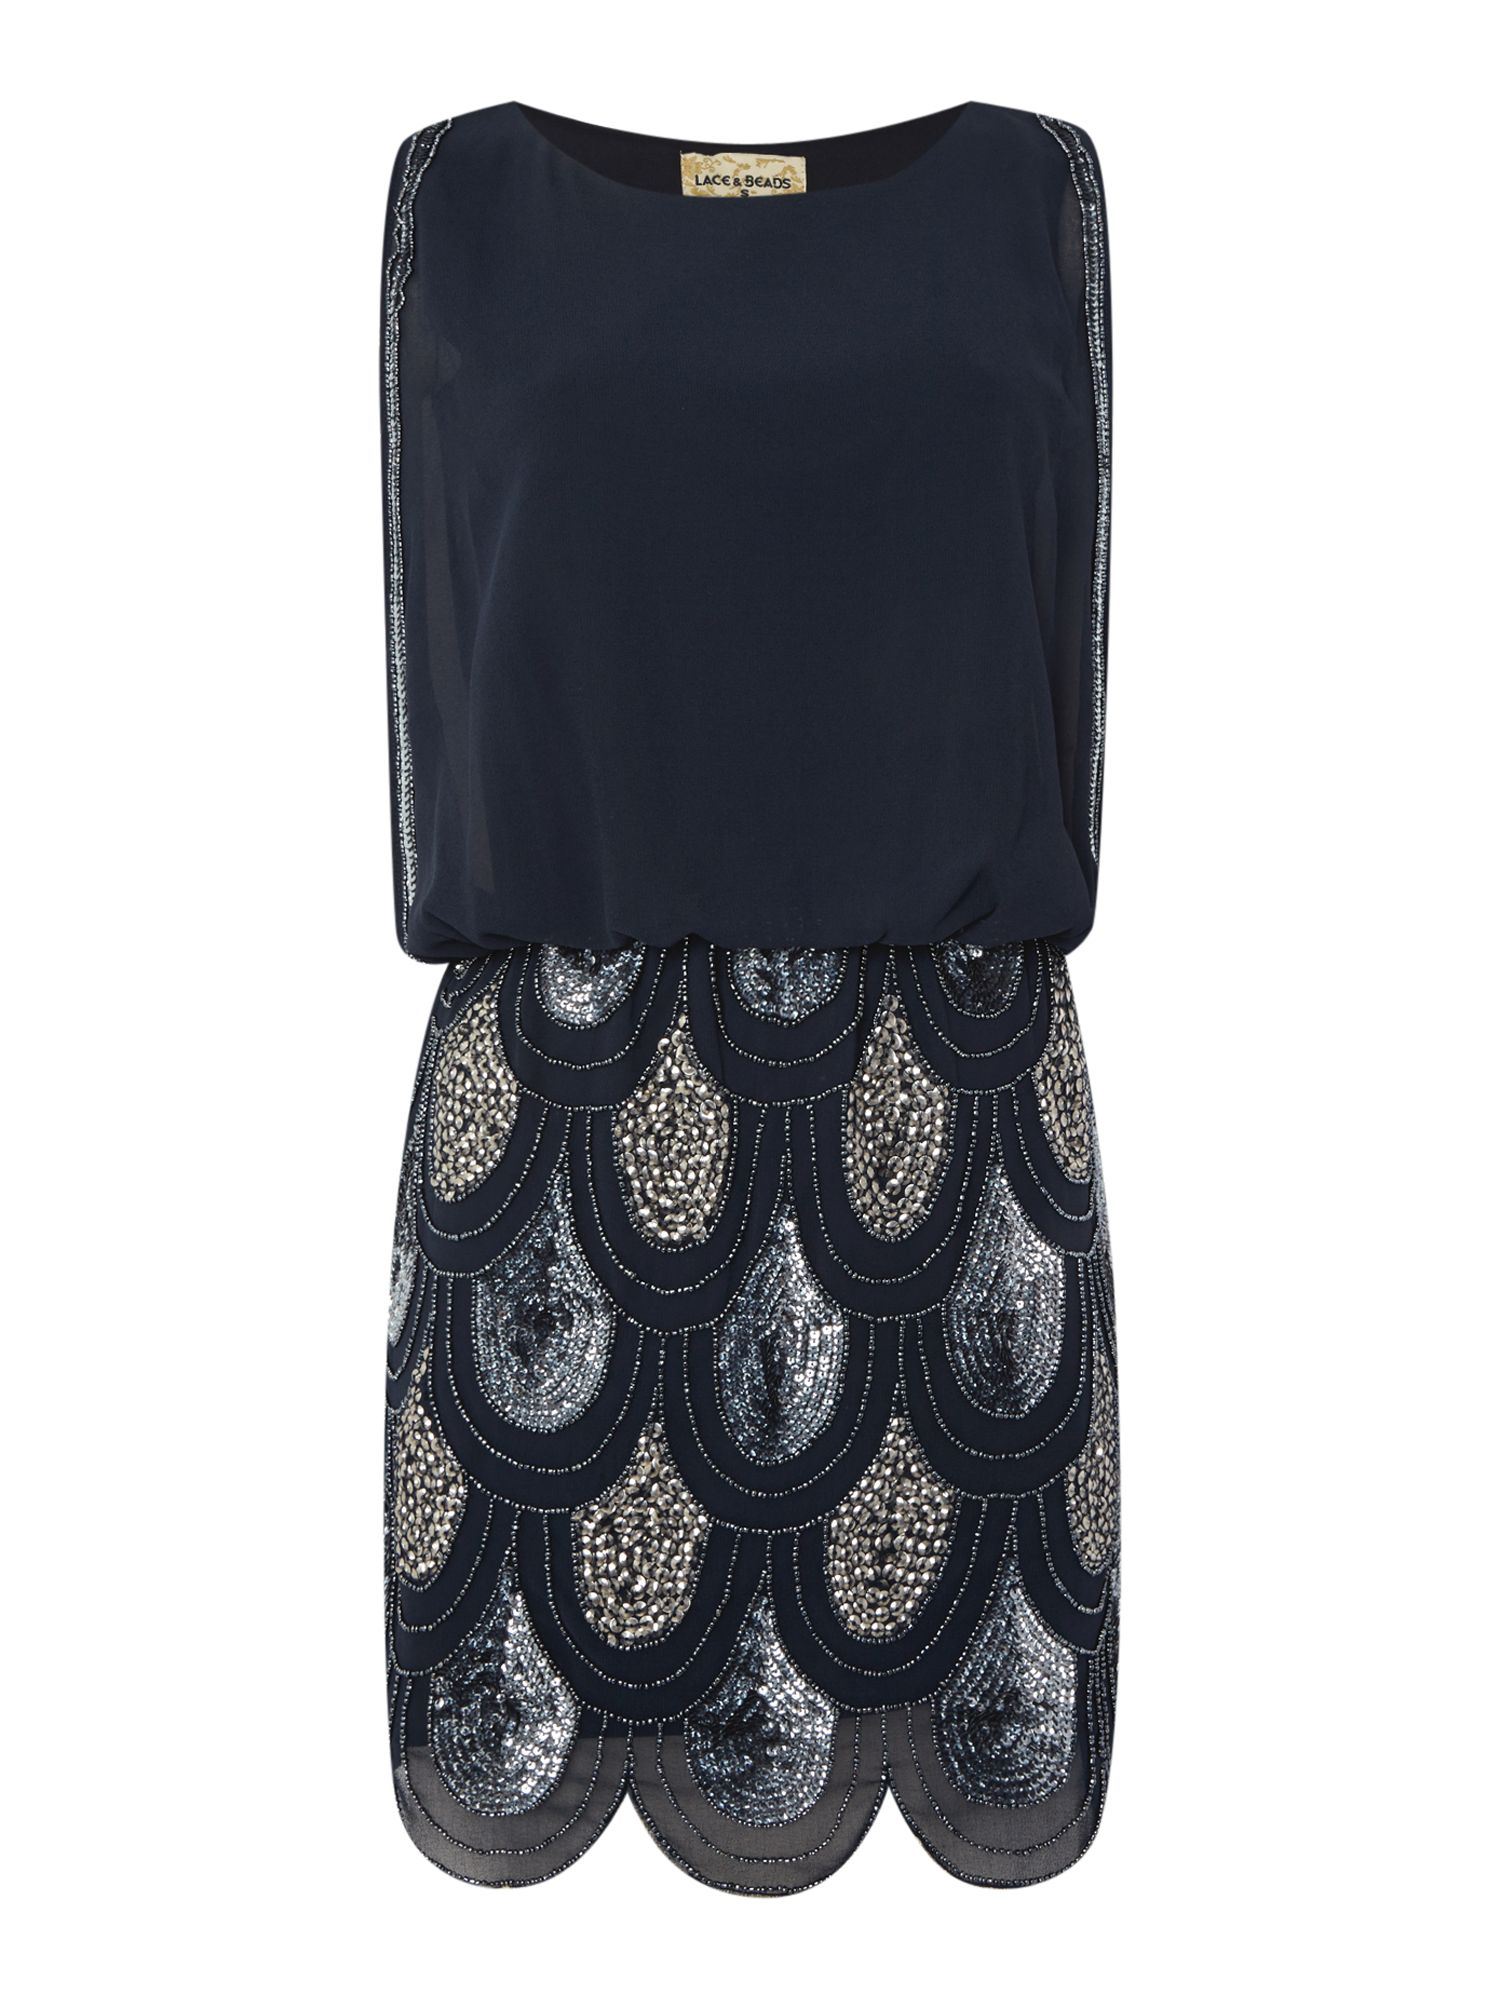 Lace and Beads Lace and Beads Sleeveless Blouson Top Sequin Detail Dress, Navy